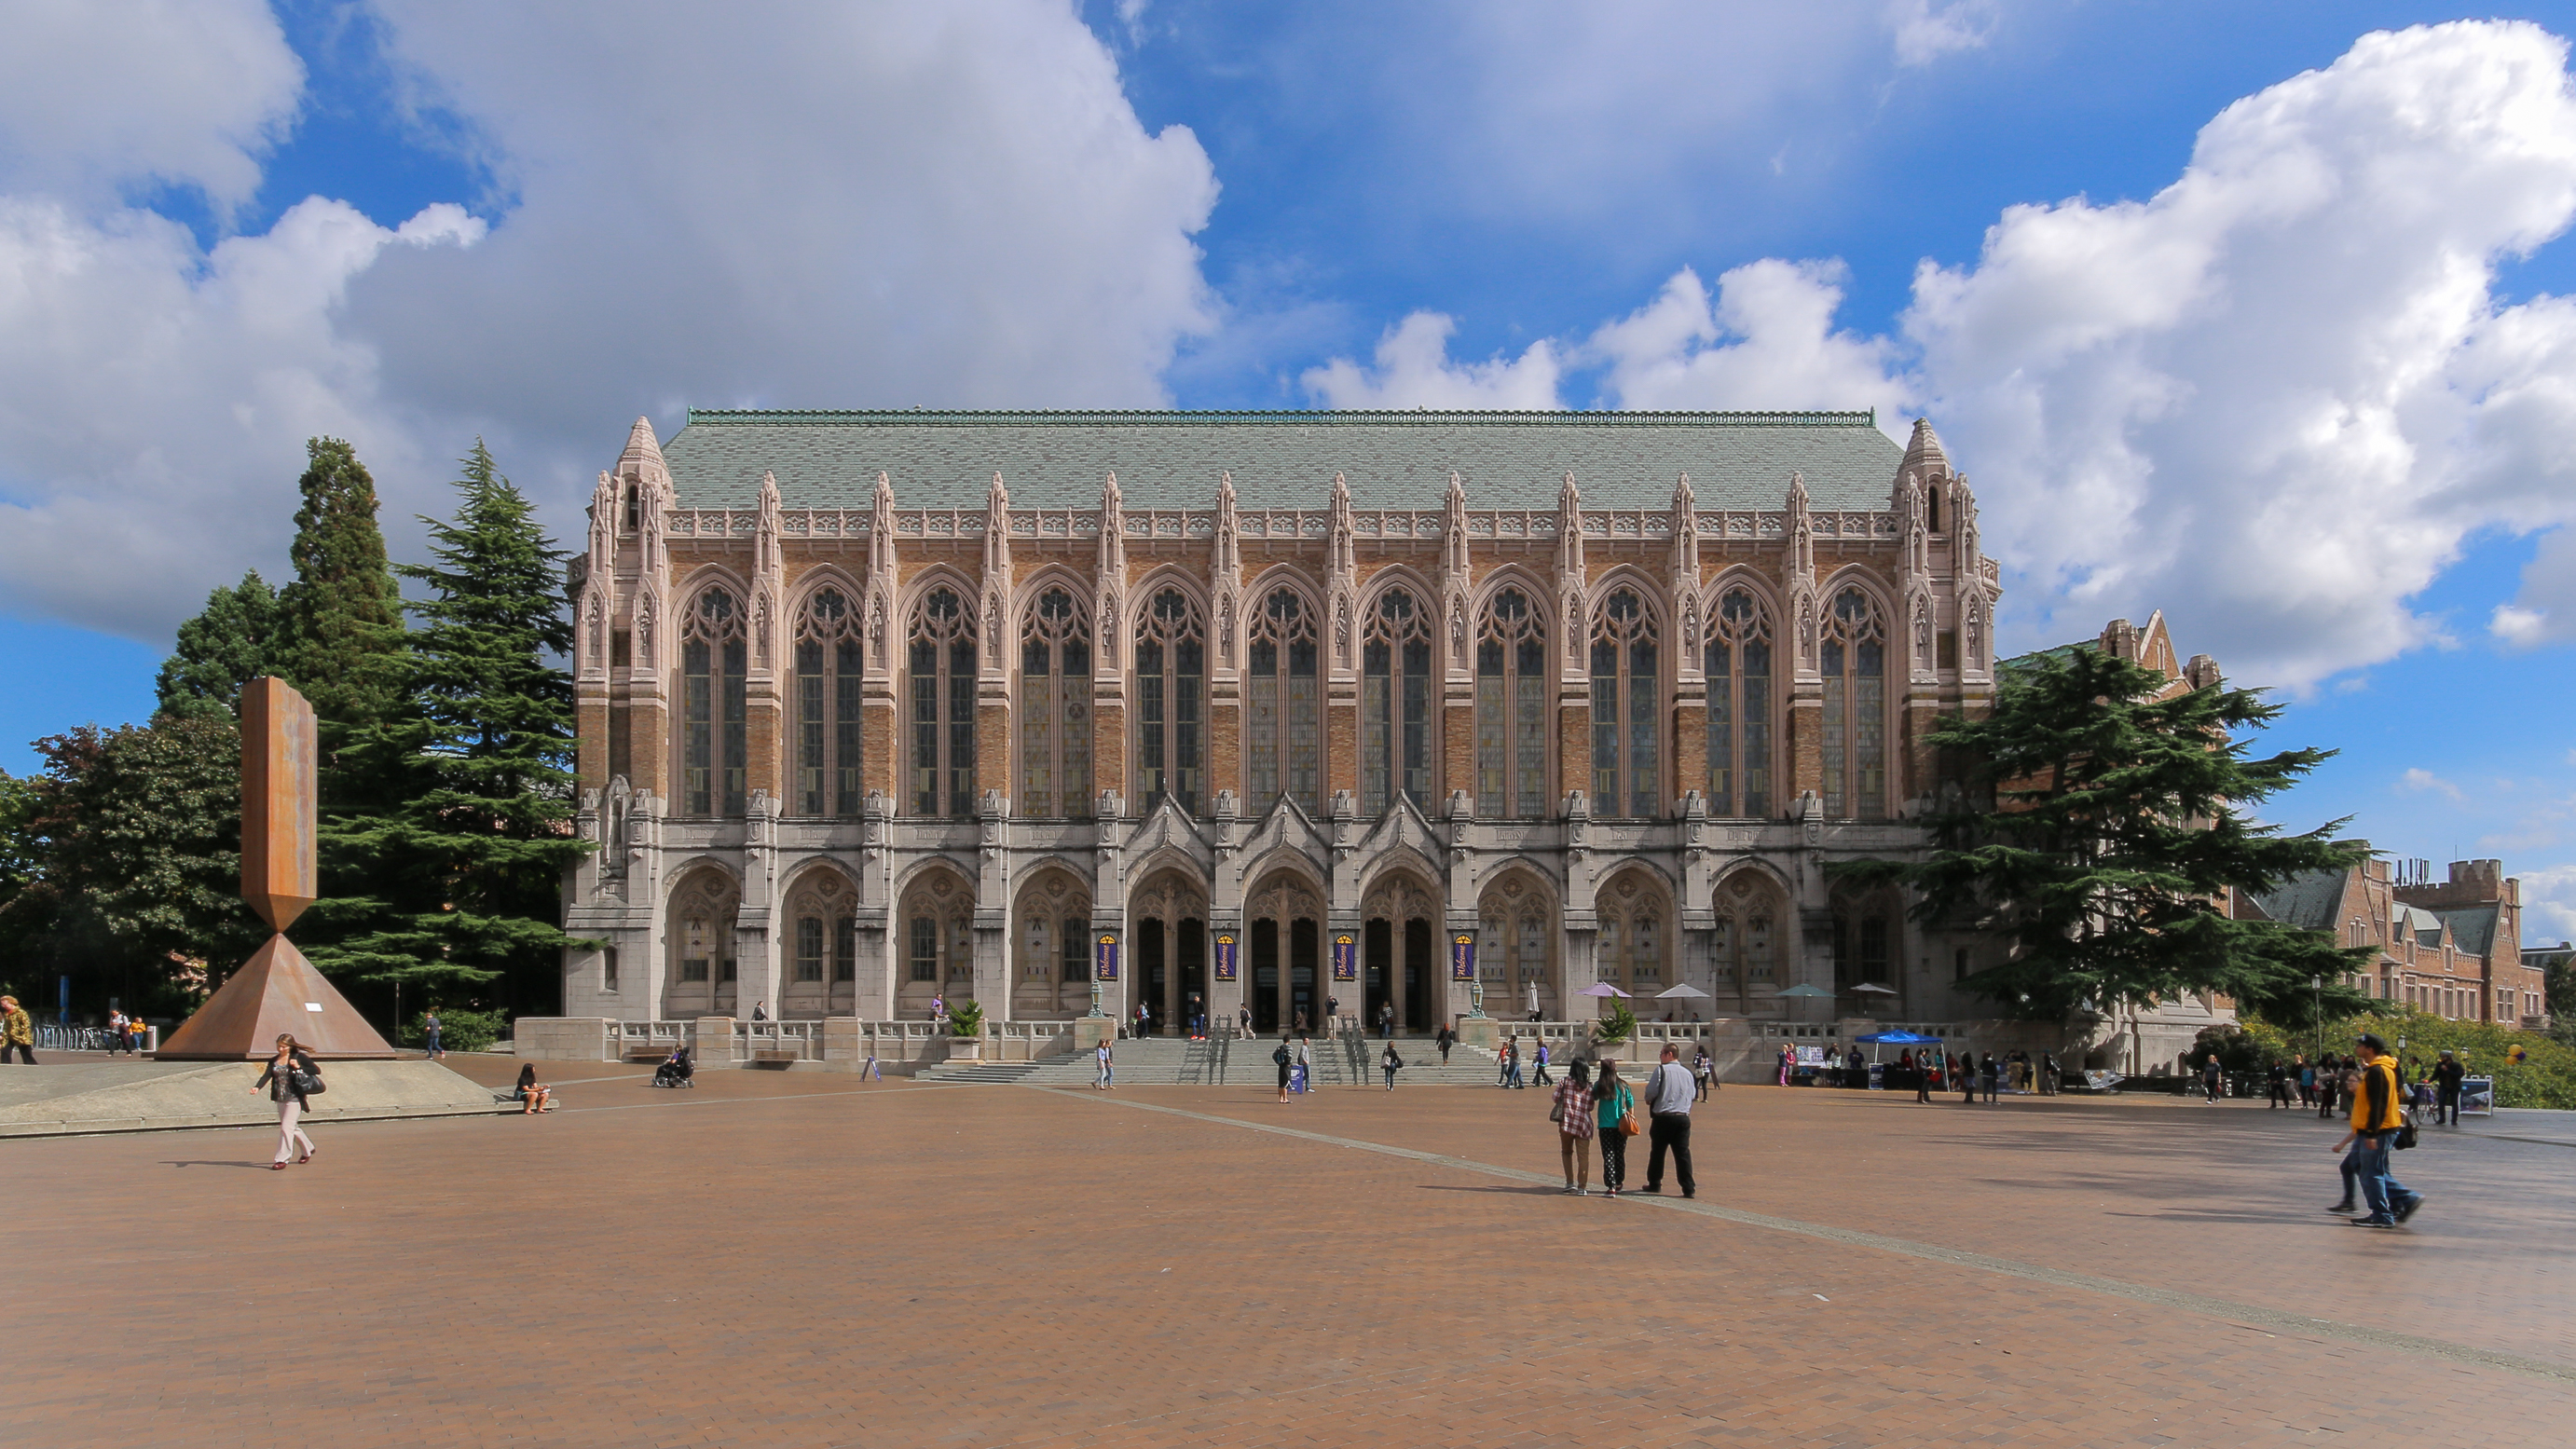 https://upload.wikimedia.org/wikipedia/commons/1/10/MK03214_University_of_Washington_Suzzallo_Library.jpg